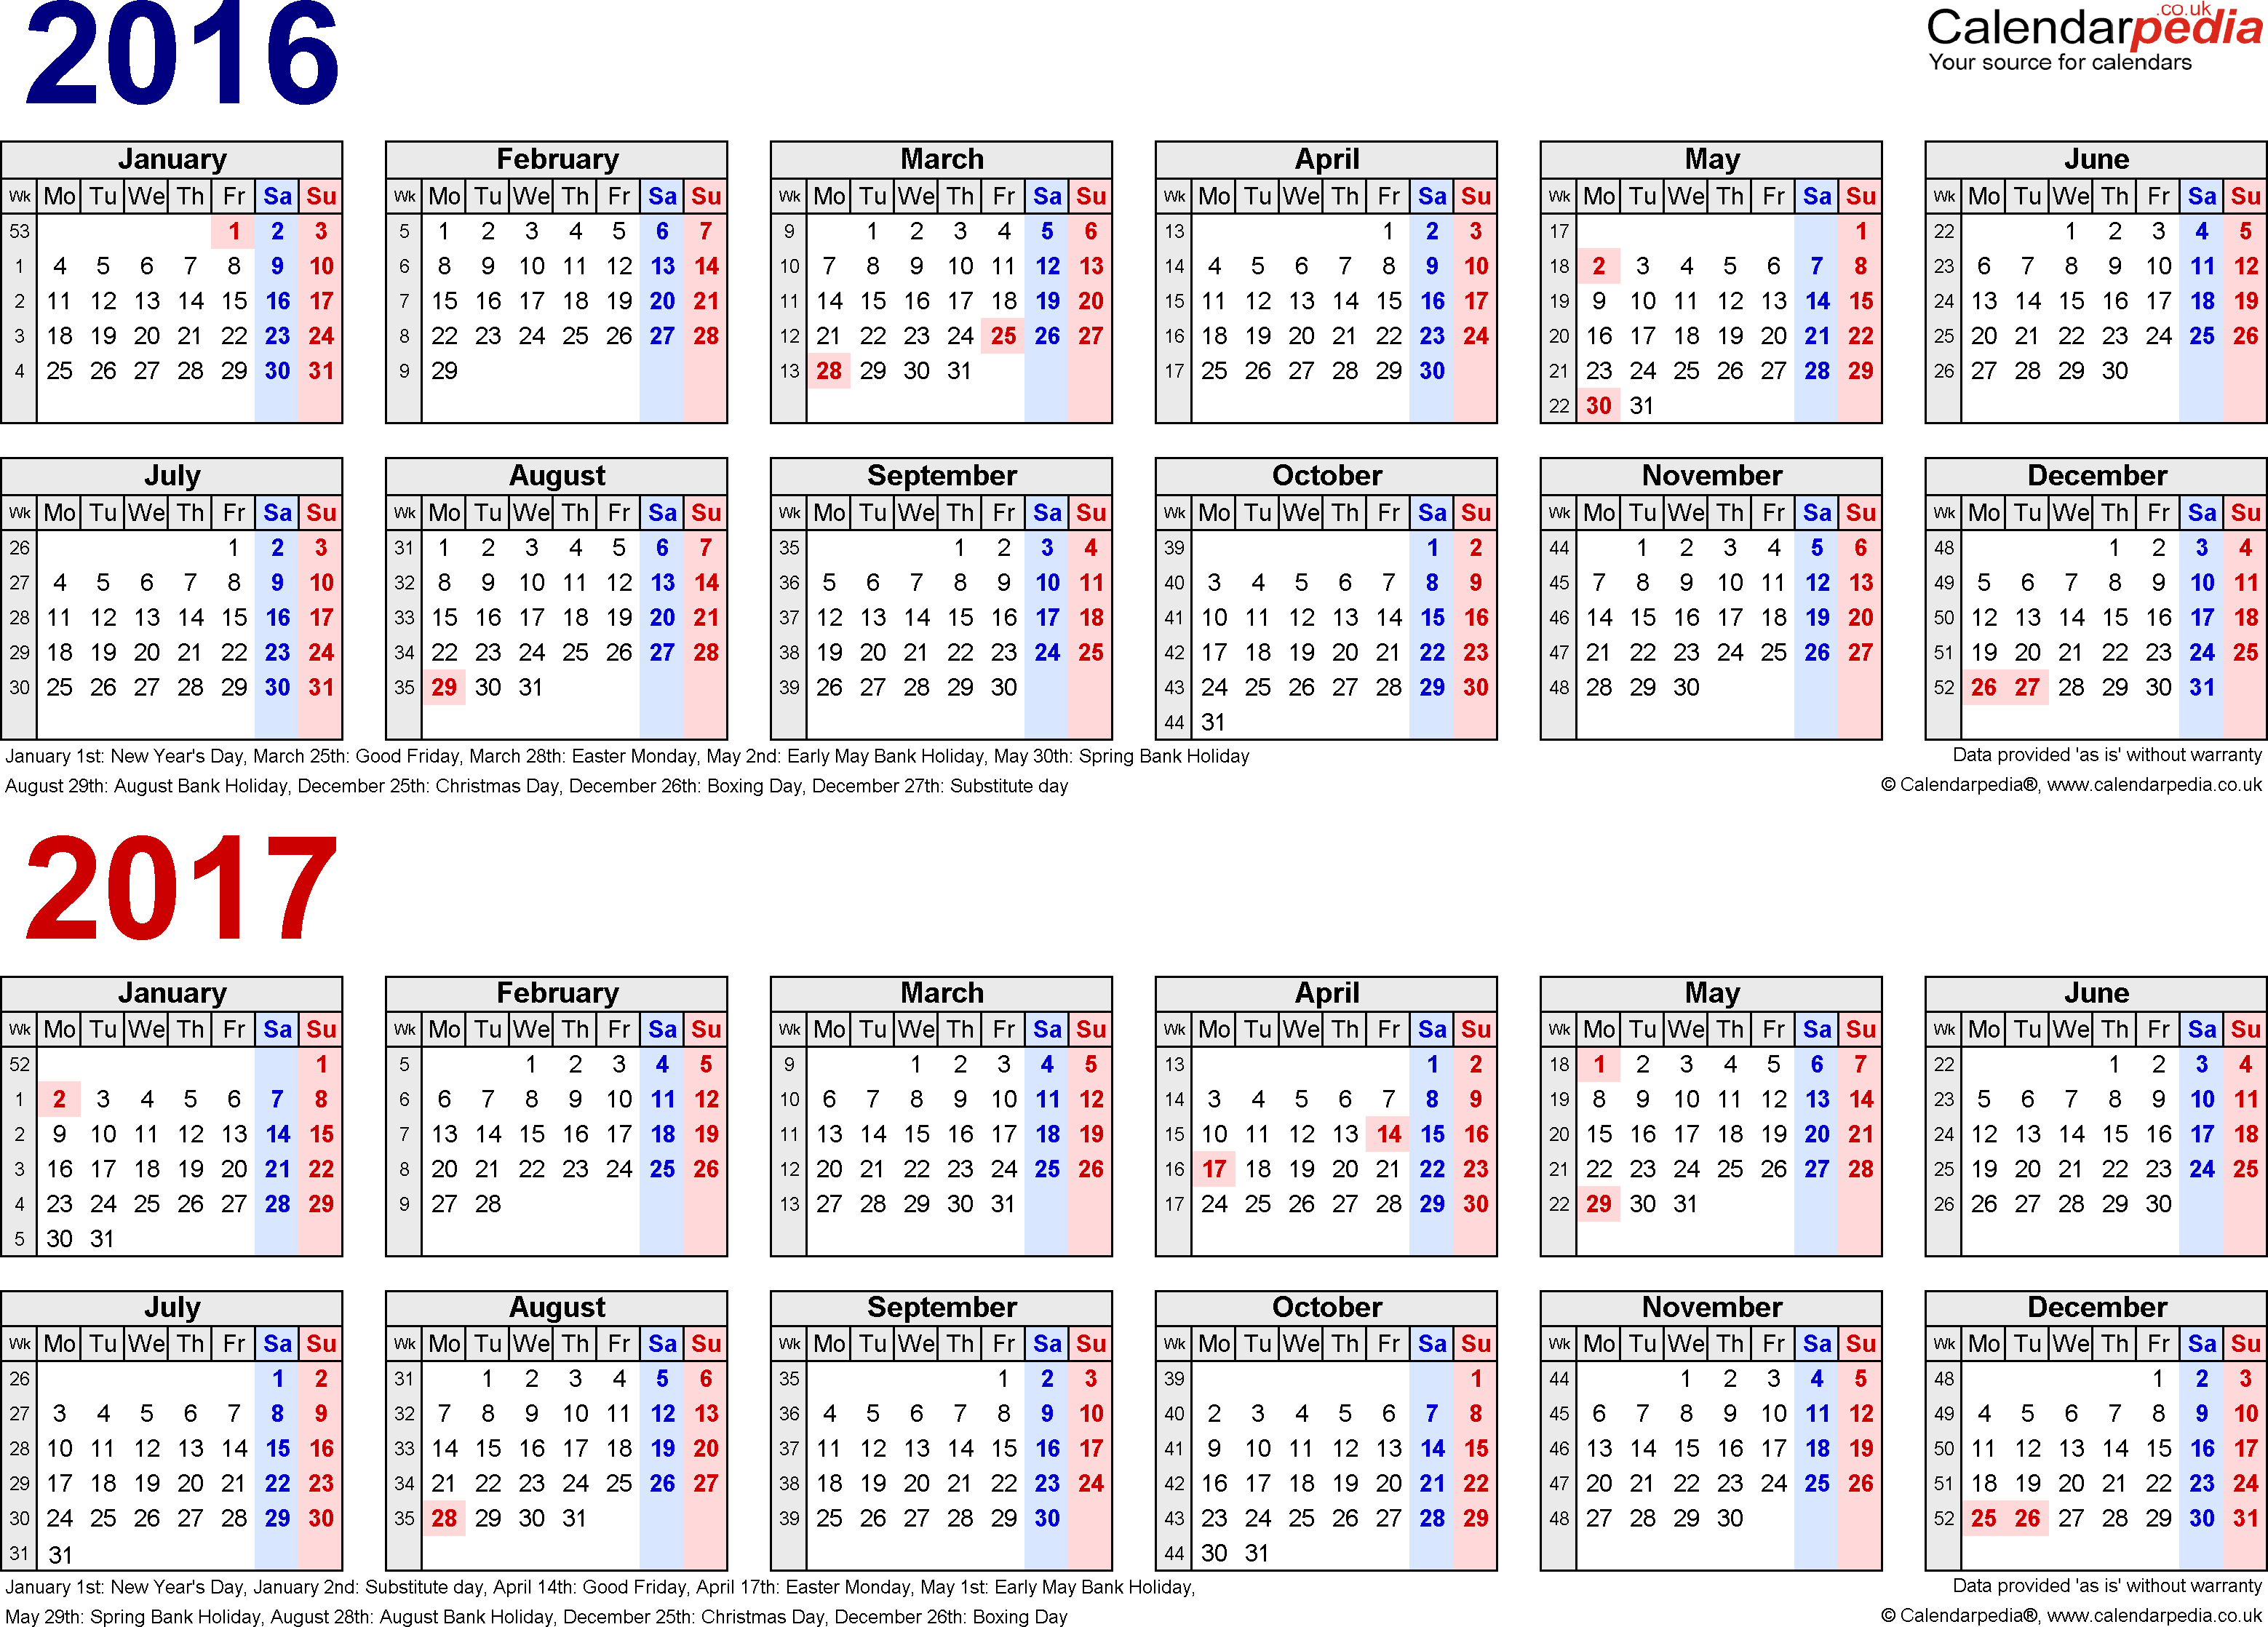 Template 1: PDF template for two year calendar 2016/2017 in blue/red (landscape orientation, 1 page, A4)